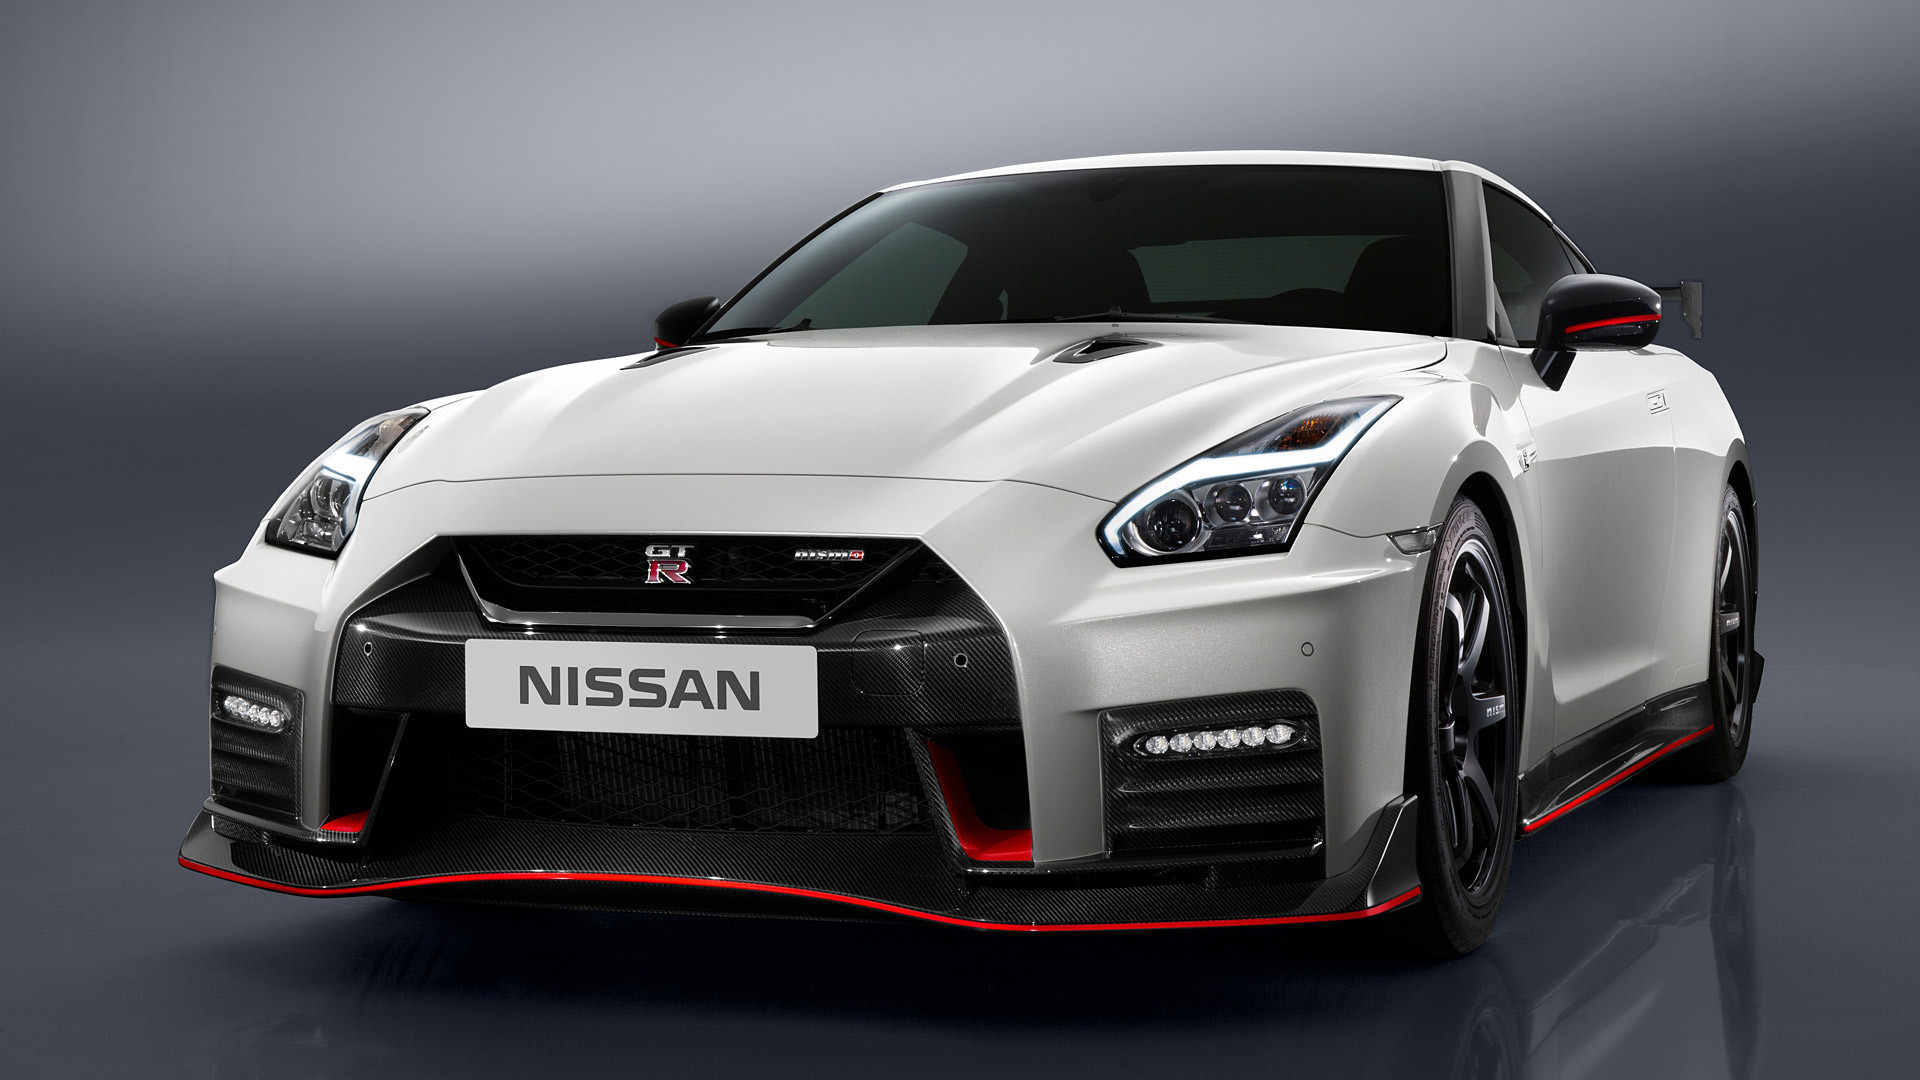 Res: 1920x1080, 2017 Nissan GT-R Nismo picture.